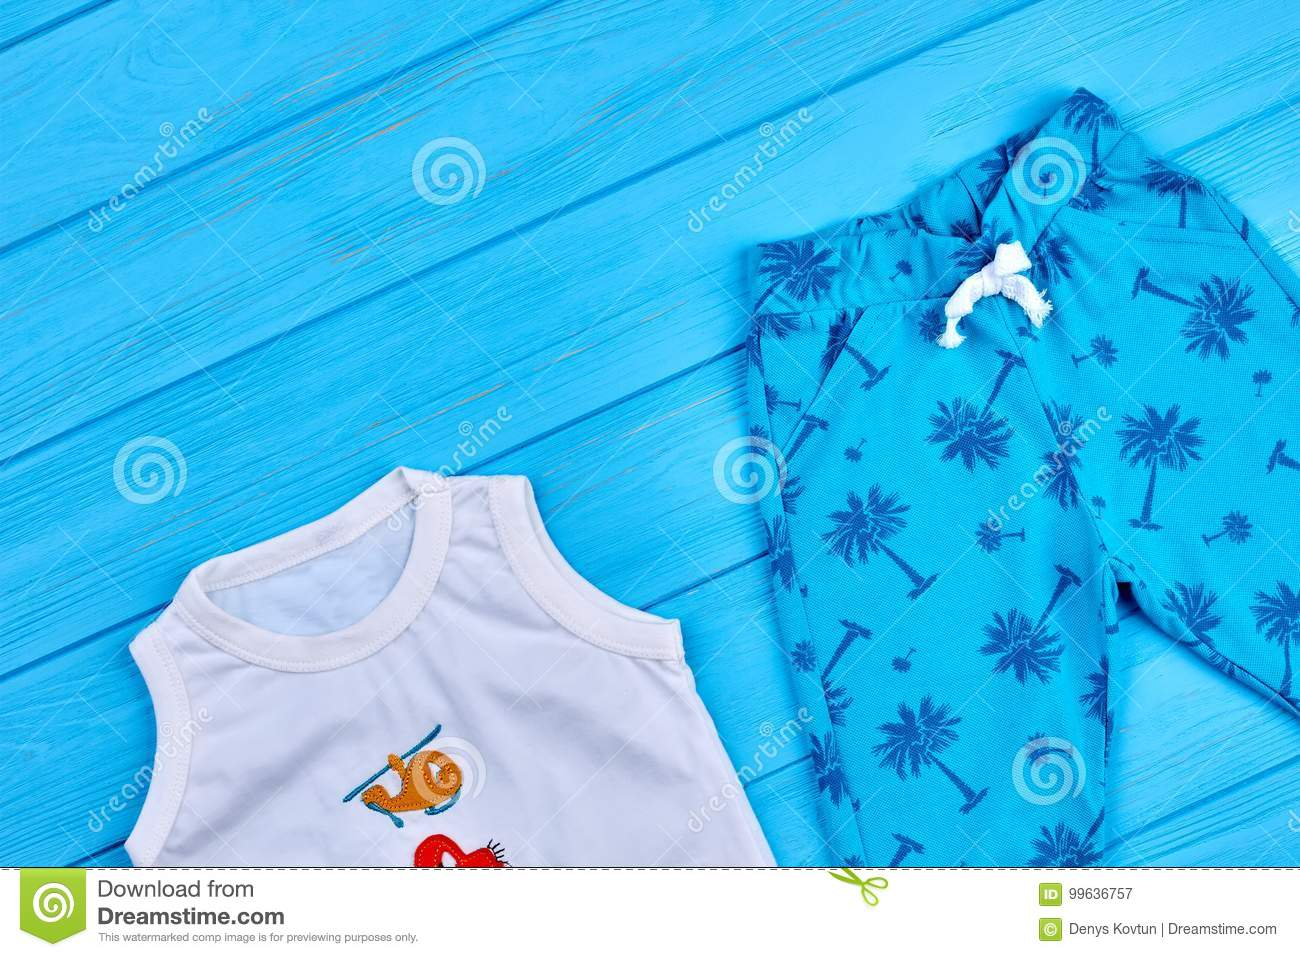 327cab9596a6 Baby Boy Summer Fashion Garment. Stock Image - Image of baby